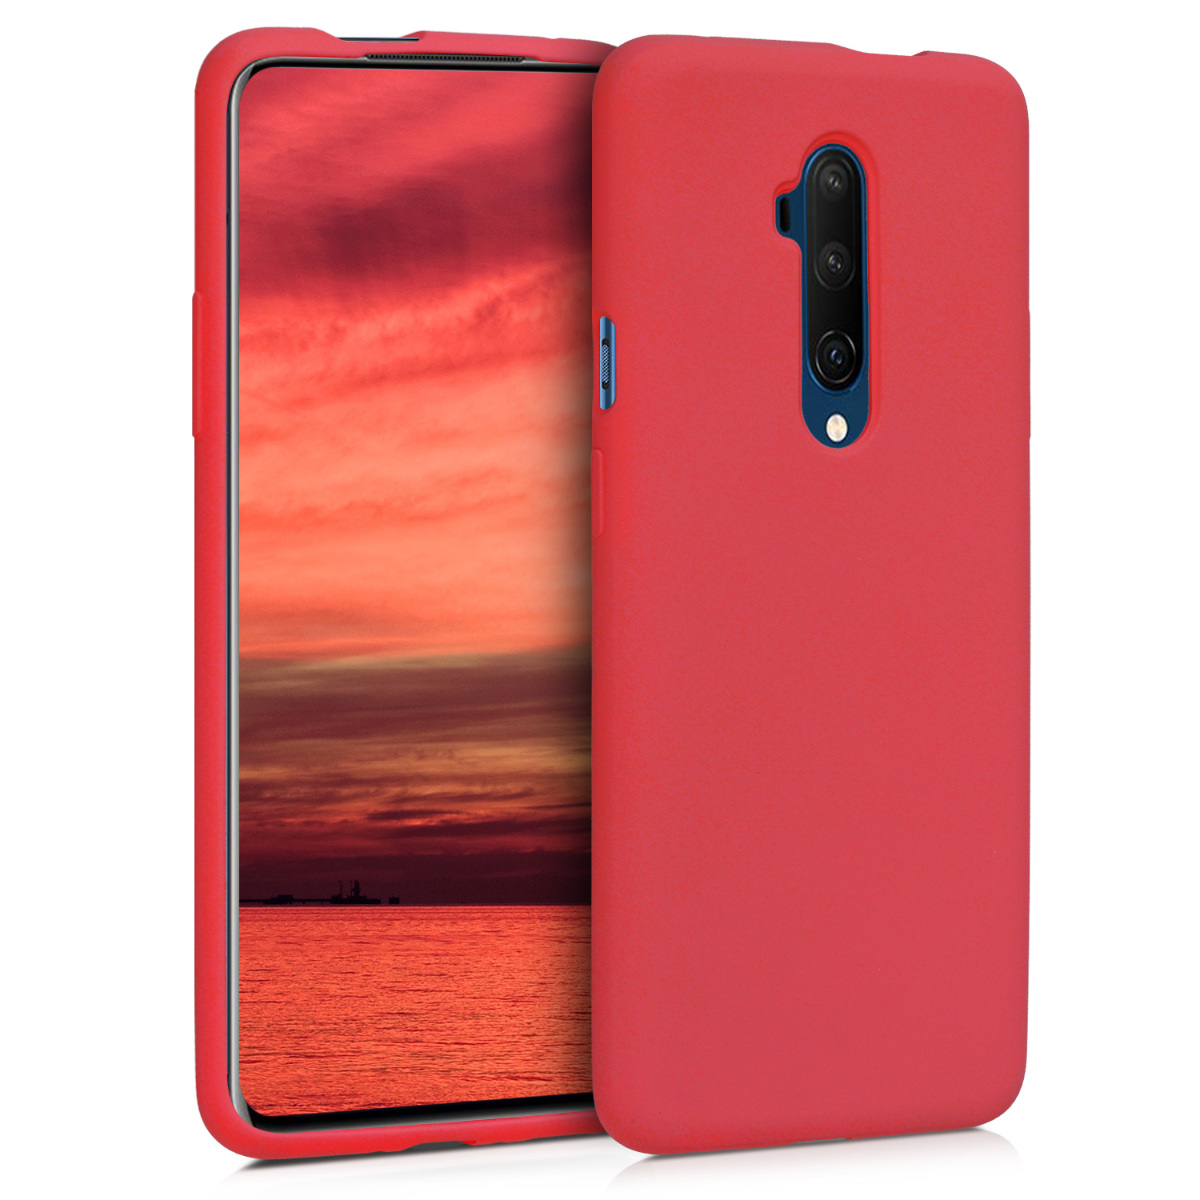 KW Θήκη Σιλικόνης OnePlus 7T Pro - Soft Flexible Rubber - Red (49989.09)